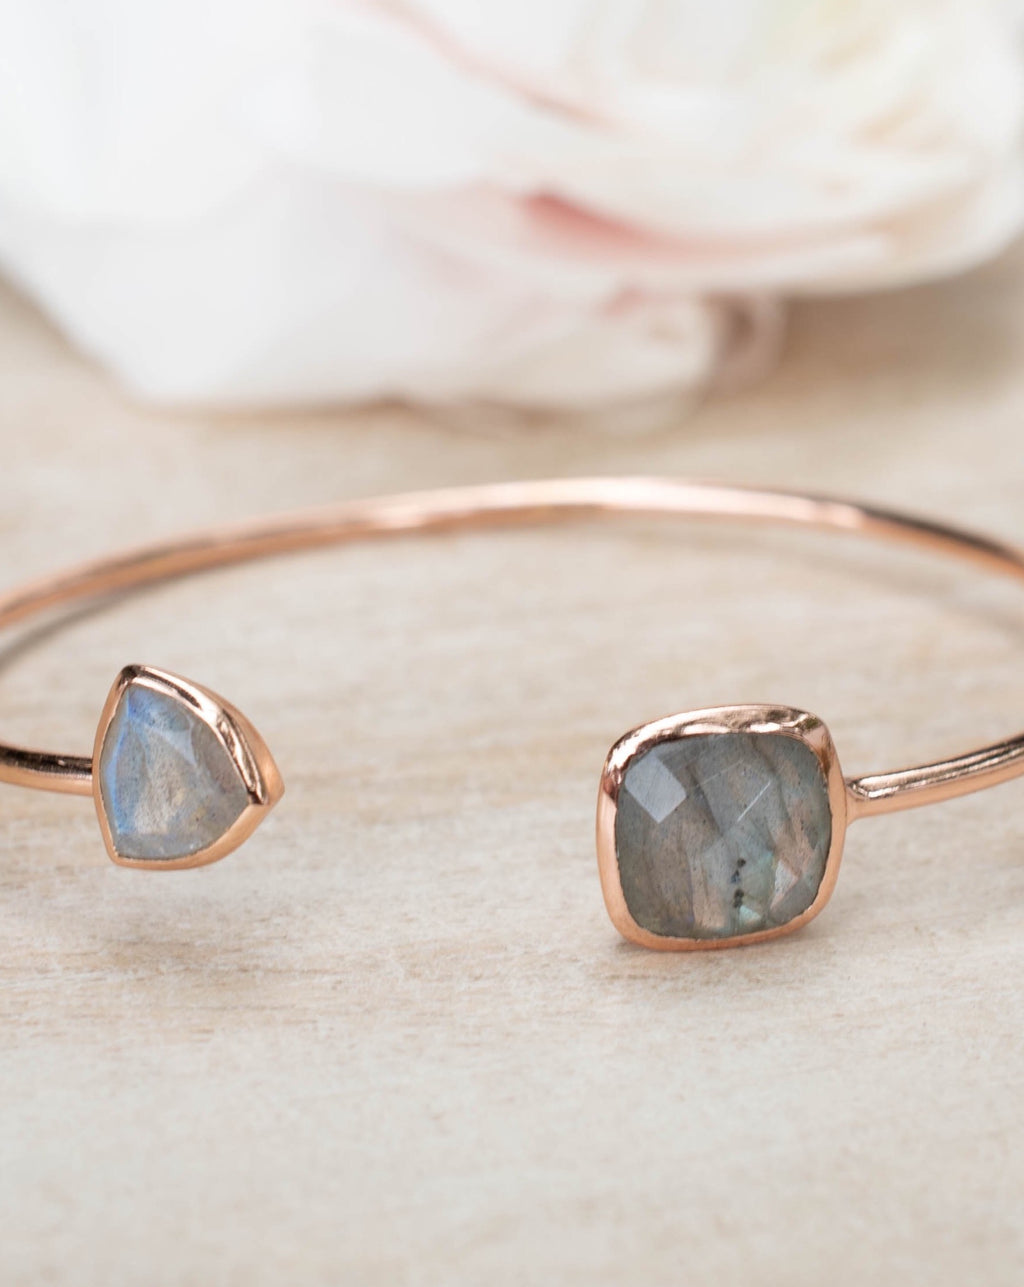 Labradorite Bangle Bracelet * Gold Plated 18k or Silver Plated or Rose Gold Plated* Gemstone *  Adjustable * Statement * Stacking * BJB001C